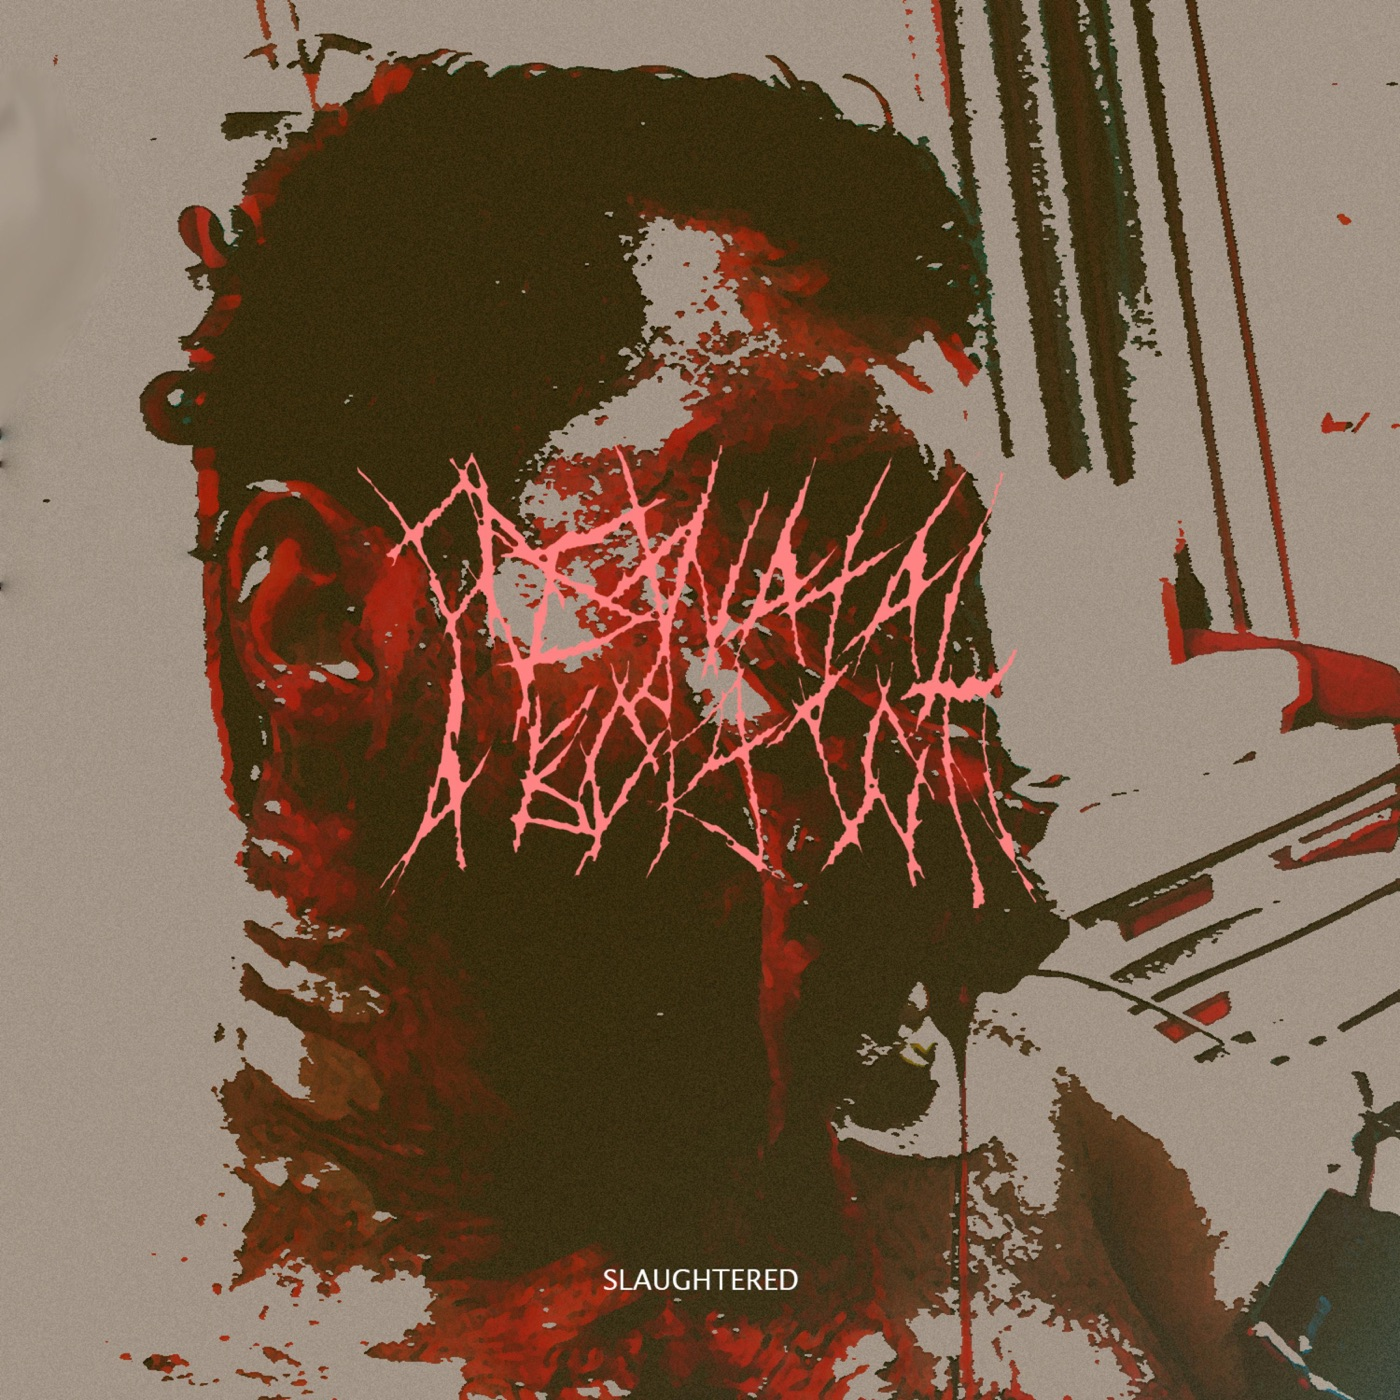 Post-Natal Abortion - Slaughtered [Single] (2019)